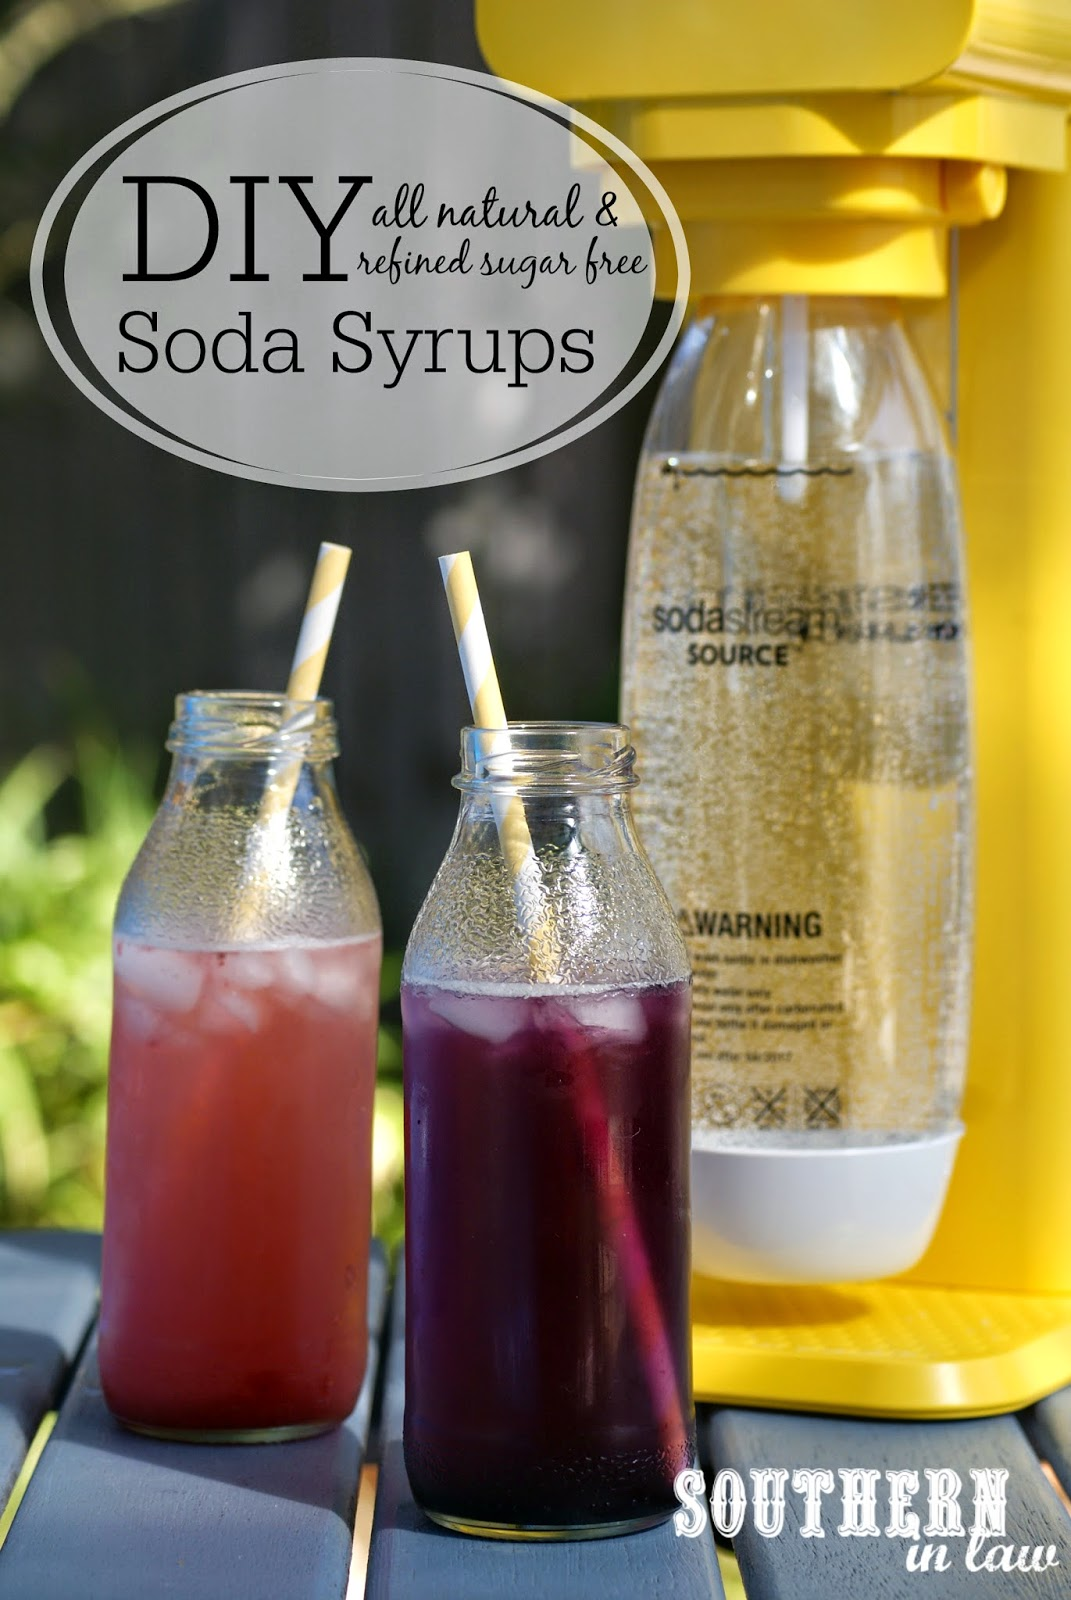 DIY Healthy Soda Syrup Recipe - low fat, gluten free, sugar free, all natural